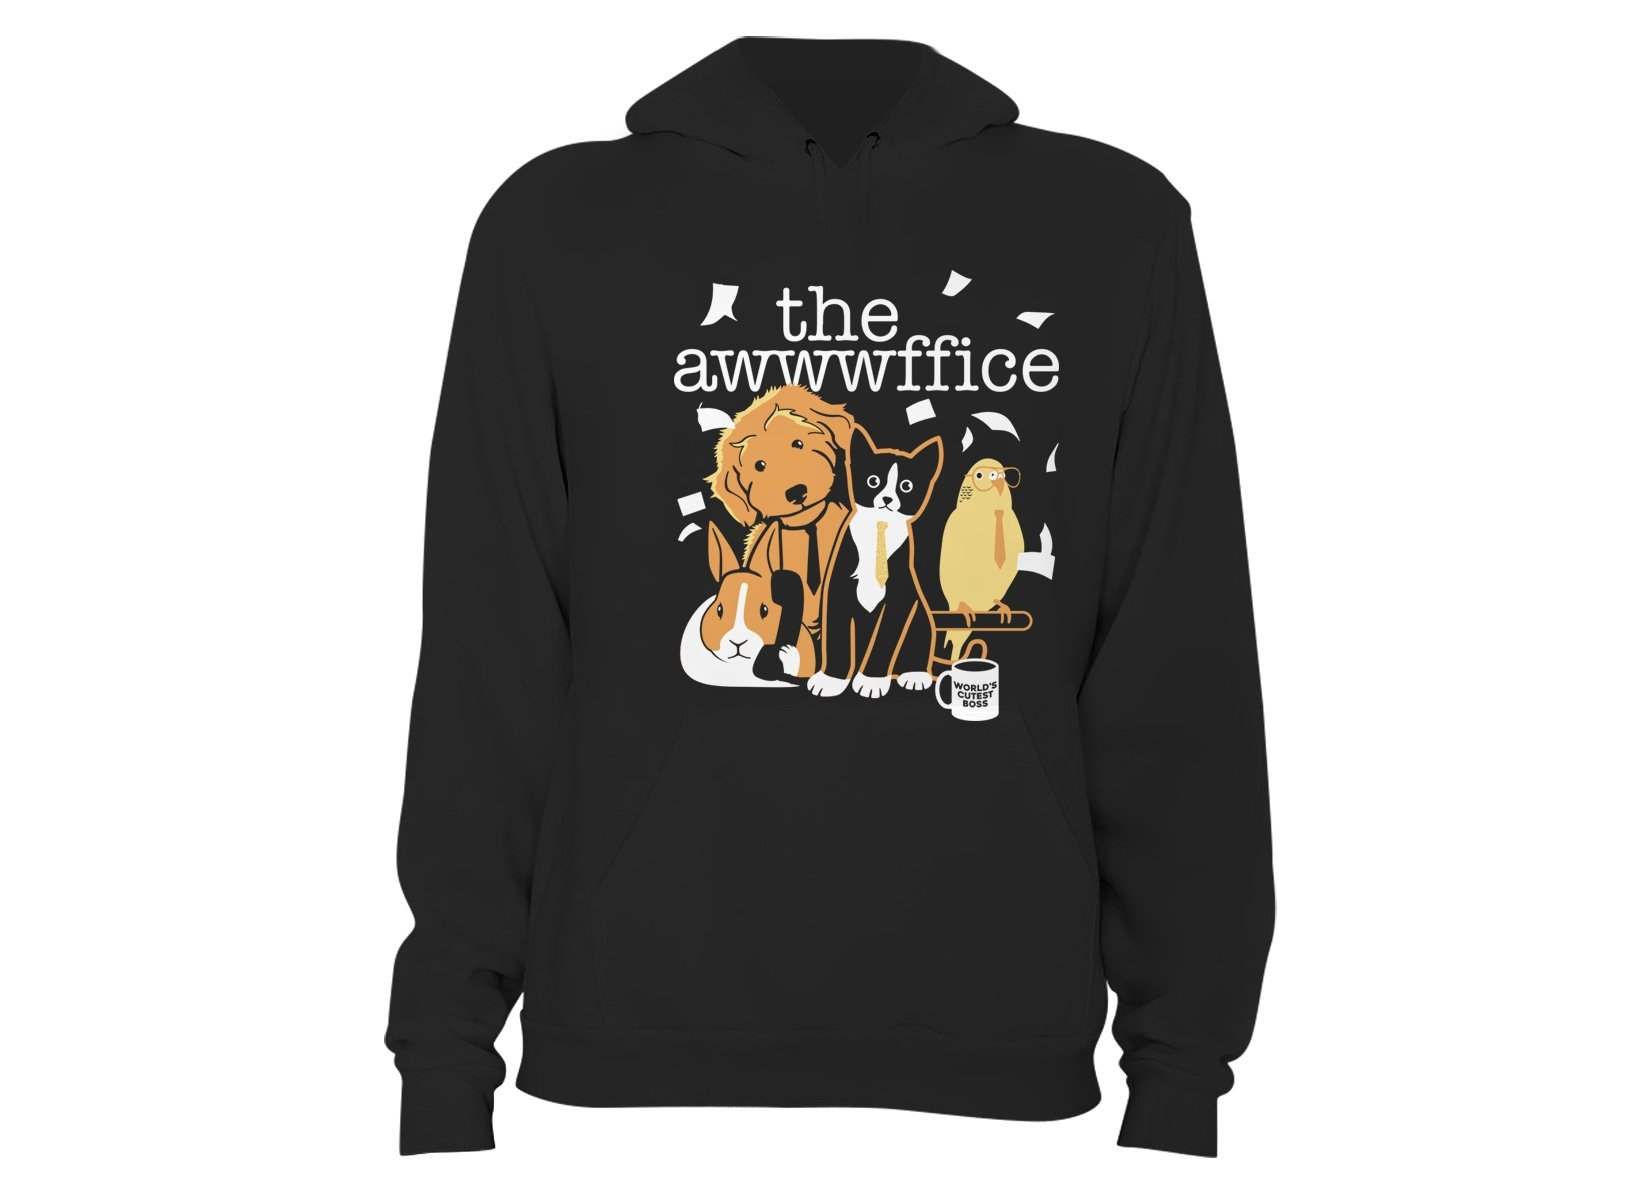 The Awwwffice on Hoodie